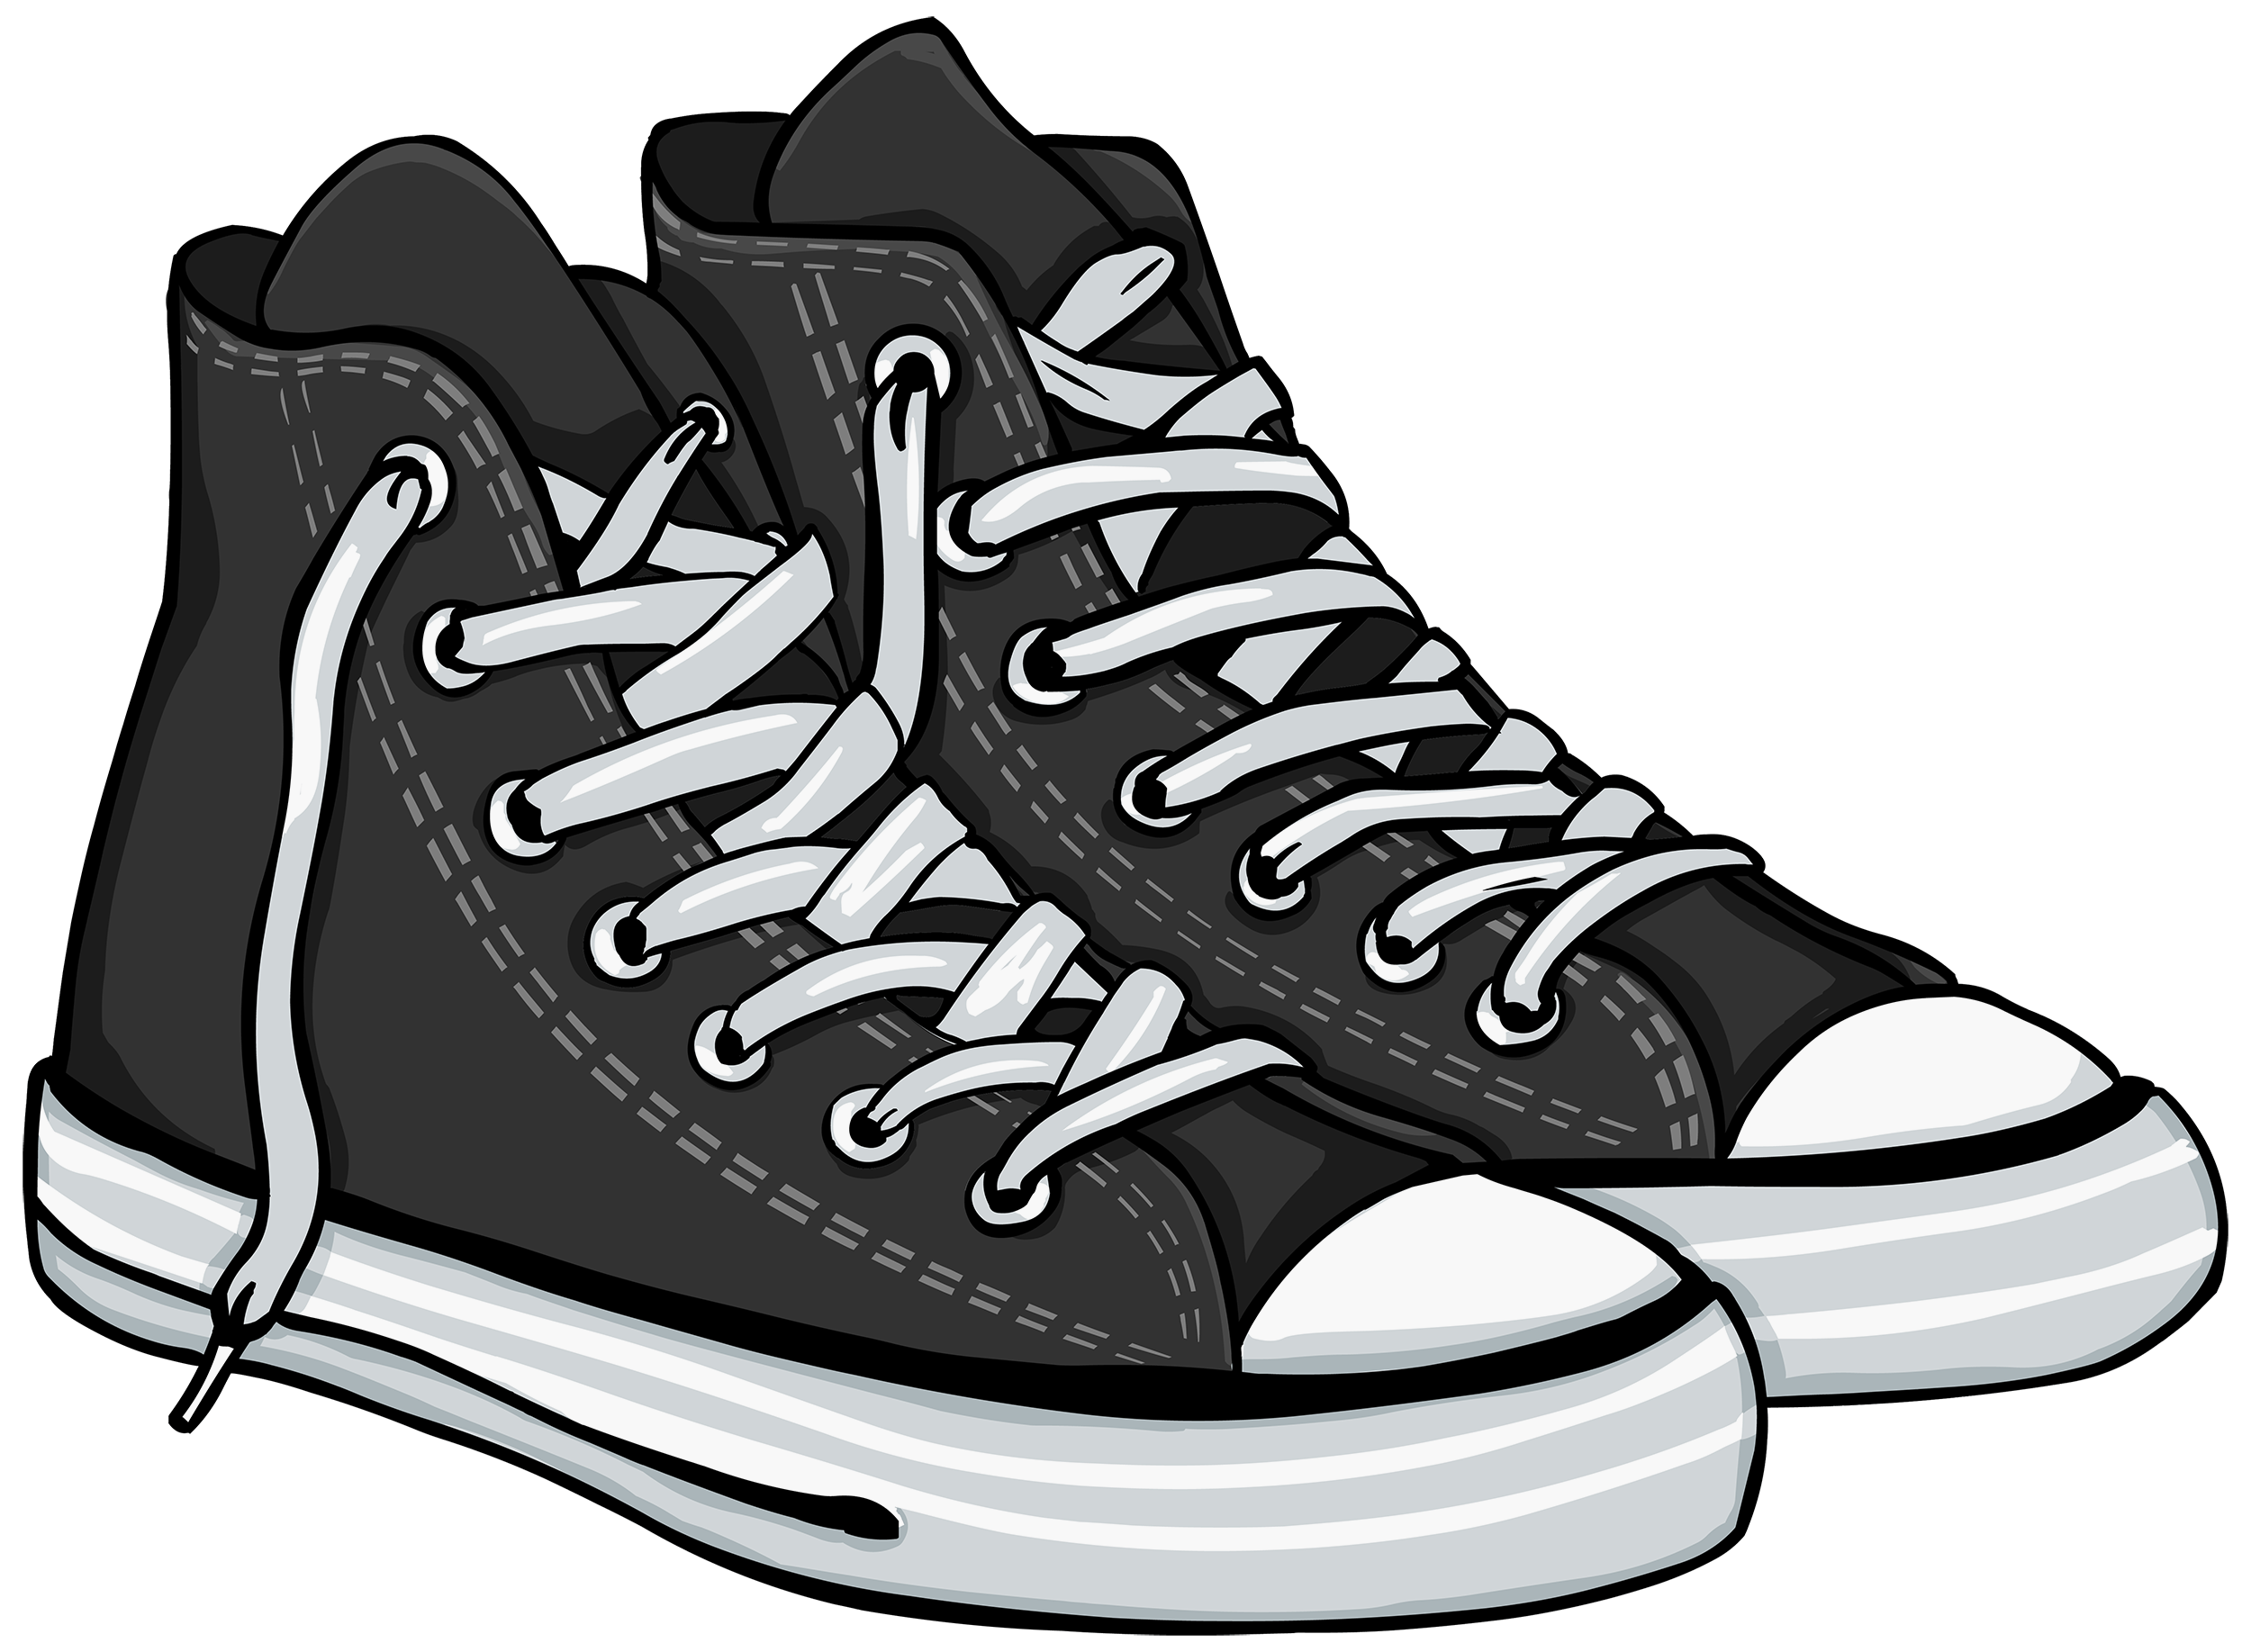 Tennis shoes clipart.